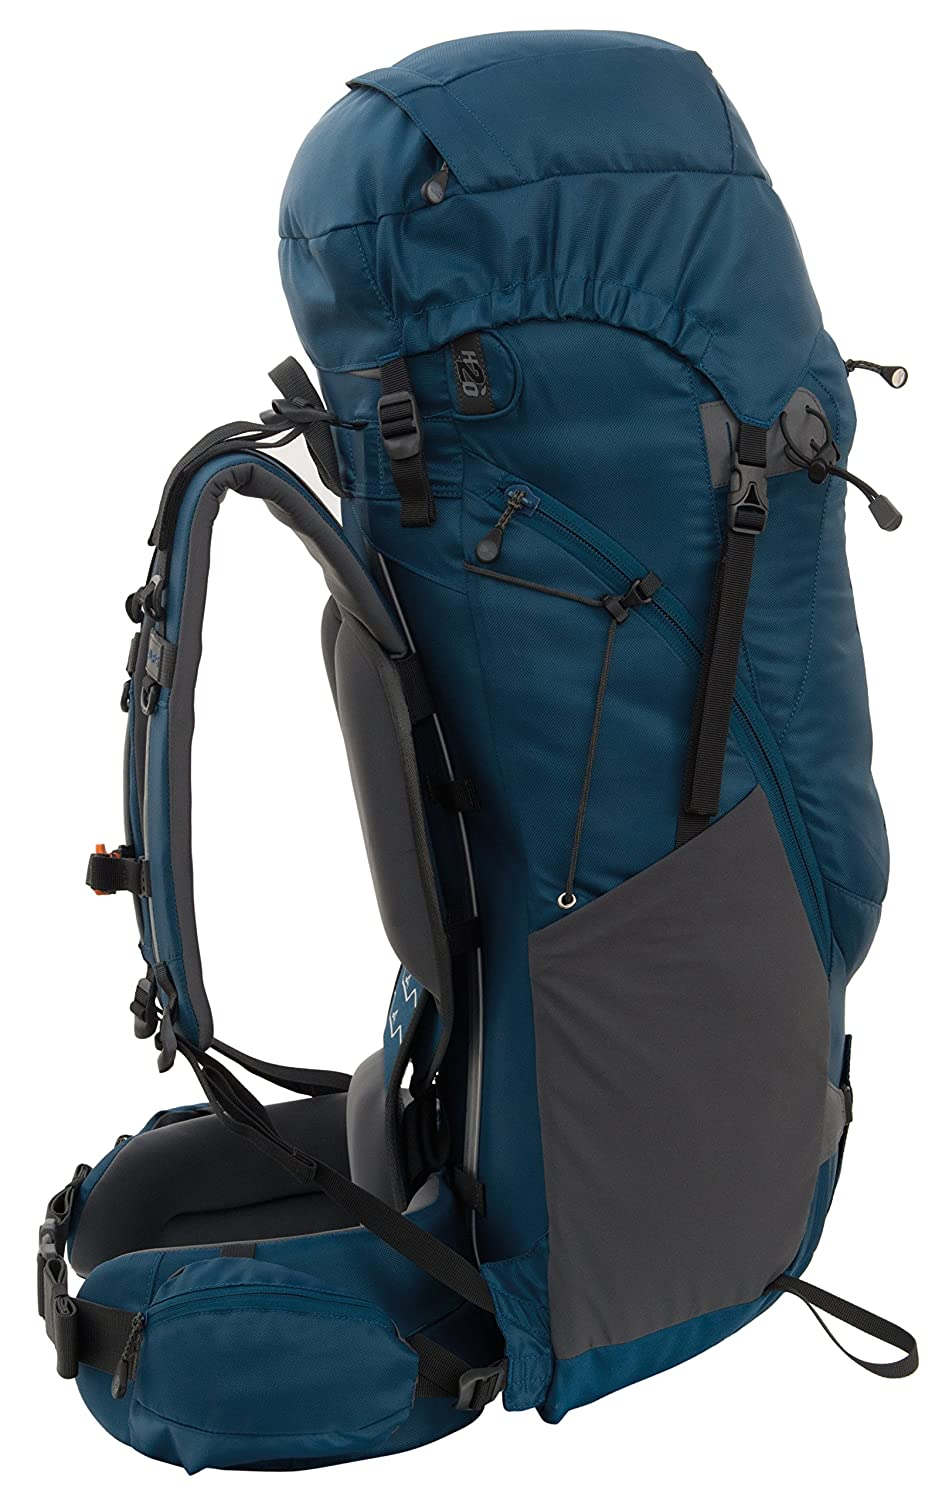 c8115824a85 Amazon.com  ALPS Mountaineering Wasatch Internal Frame Pack, 65 Liters   Sports   Outdoors